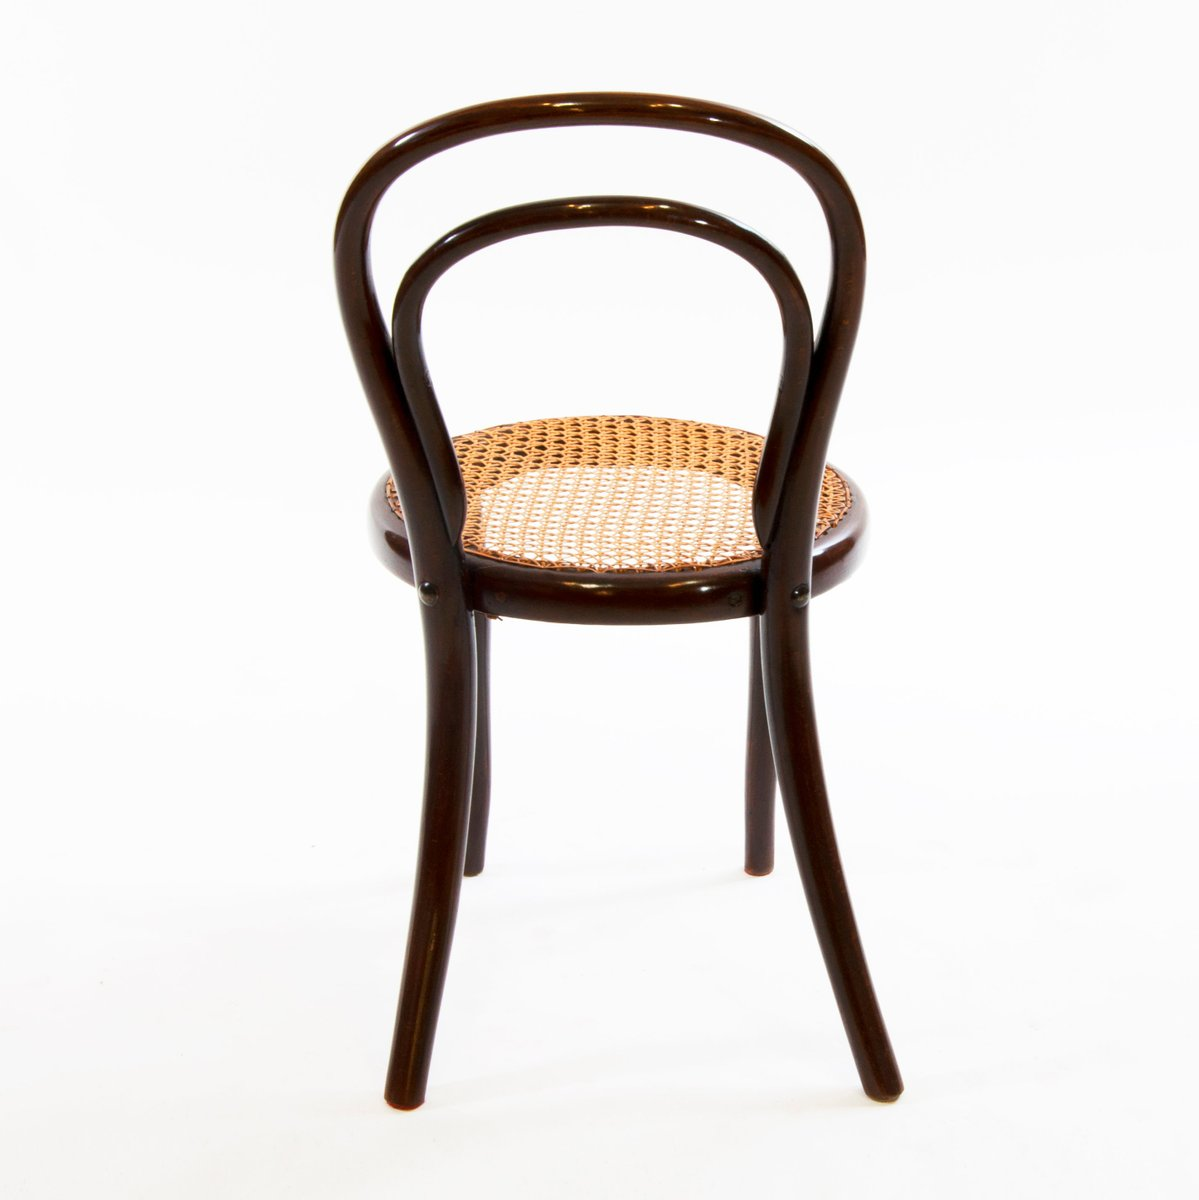 1 Child Bentwood Chair From Thonet 6. $1,783.00. Price Per Piece